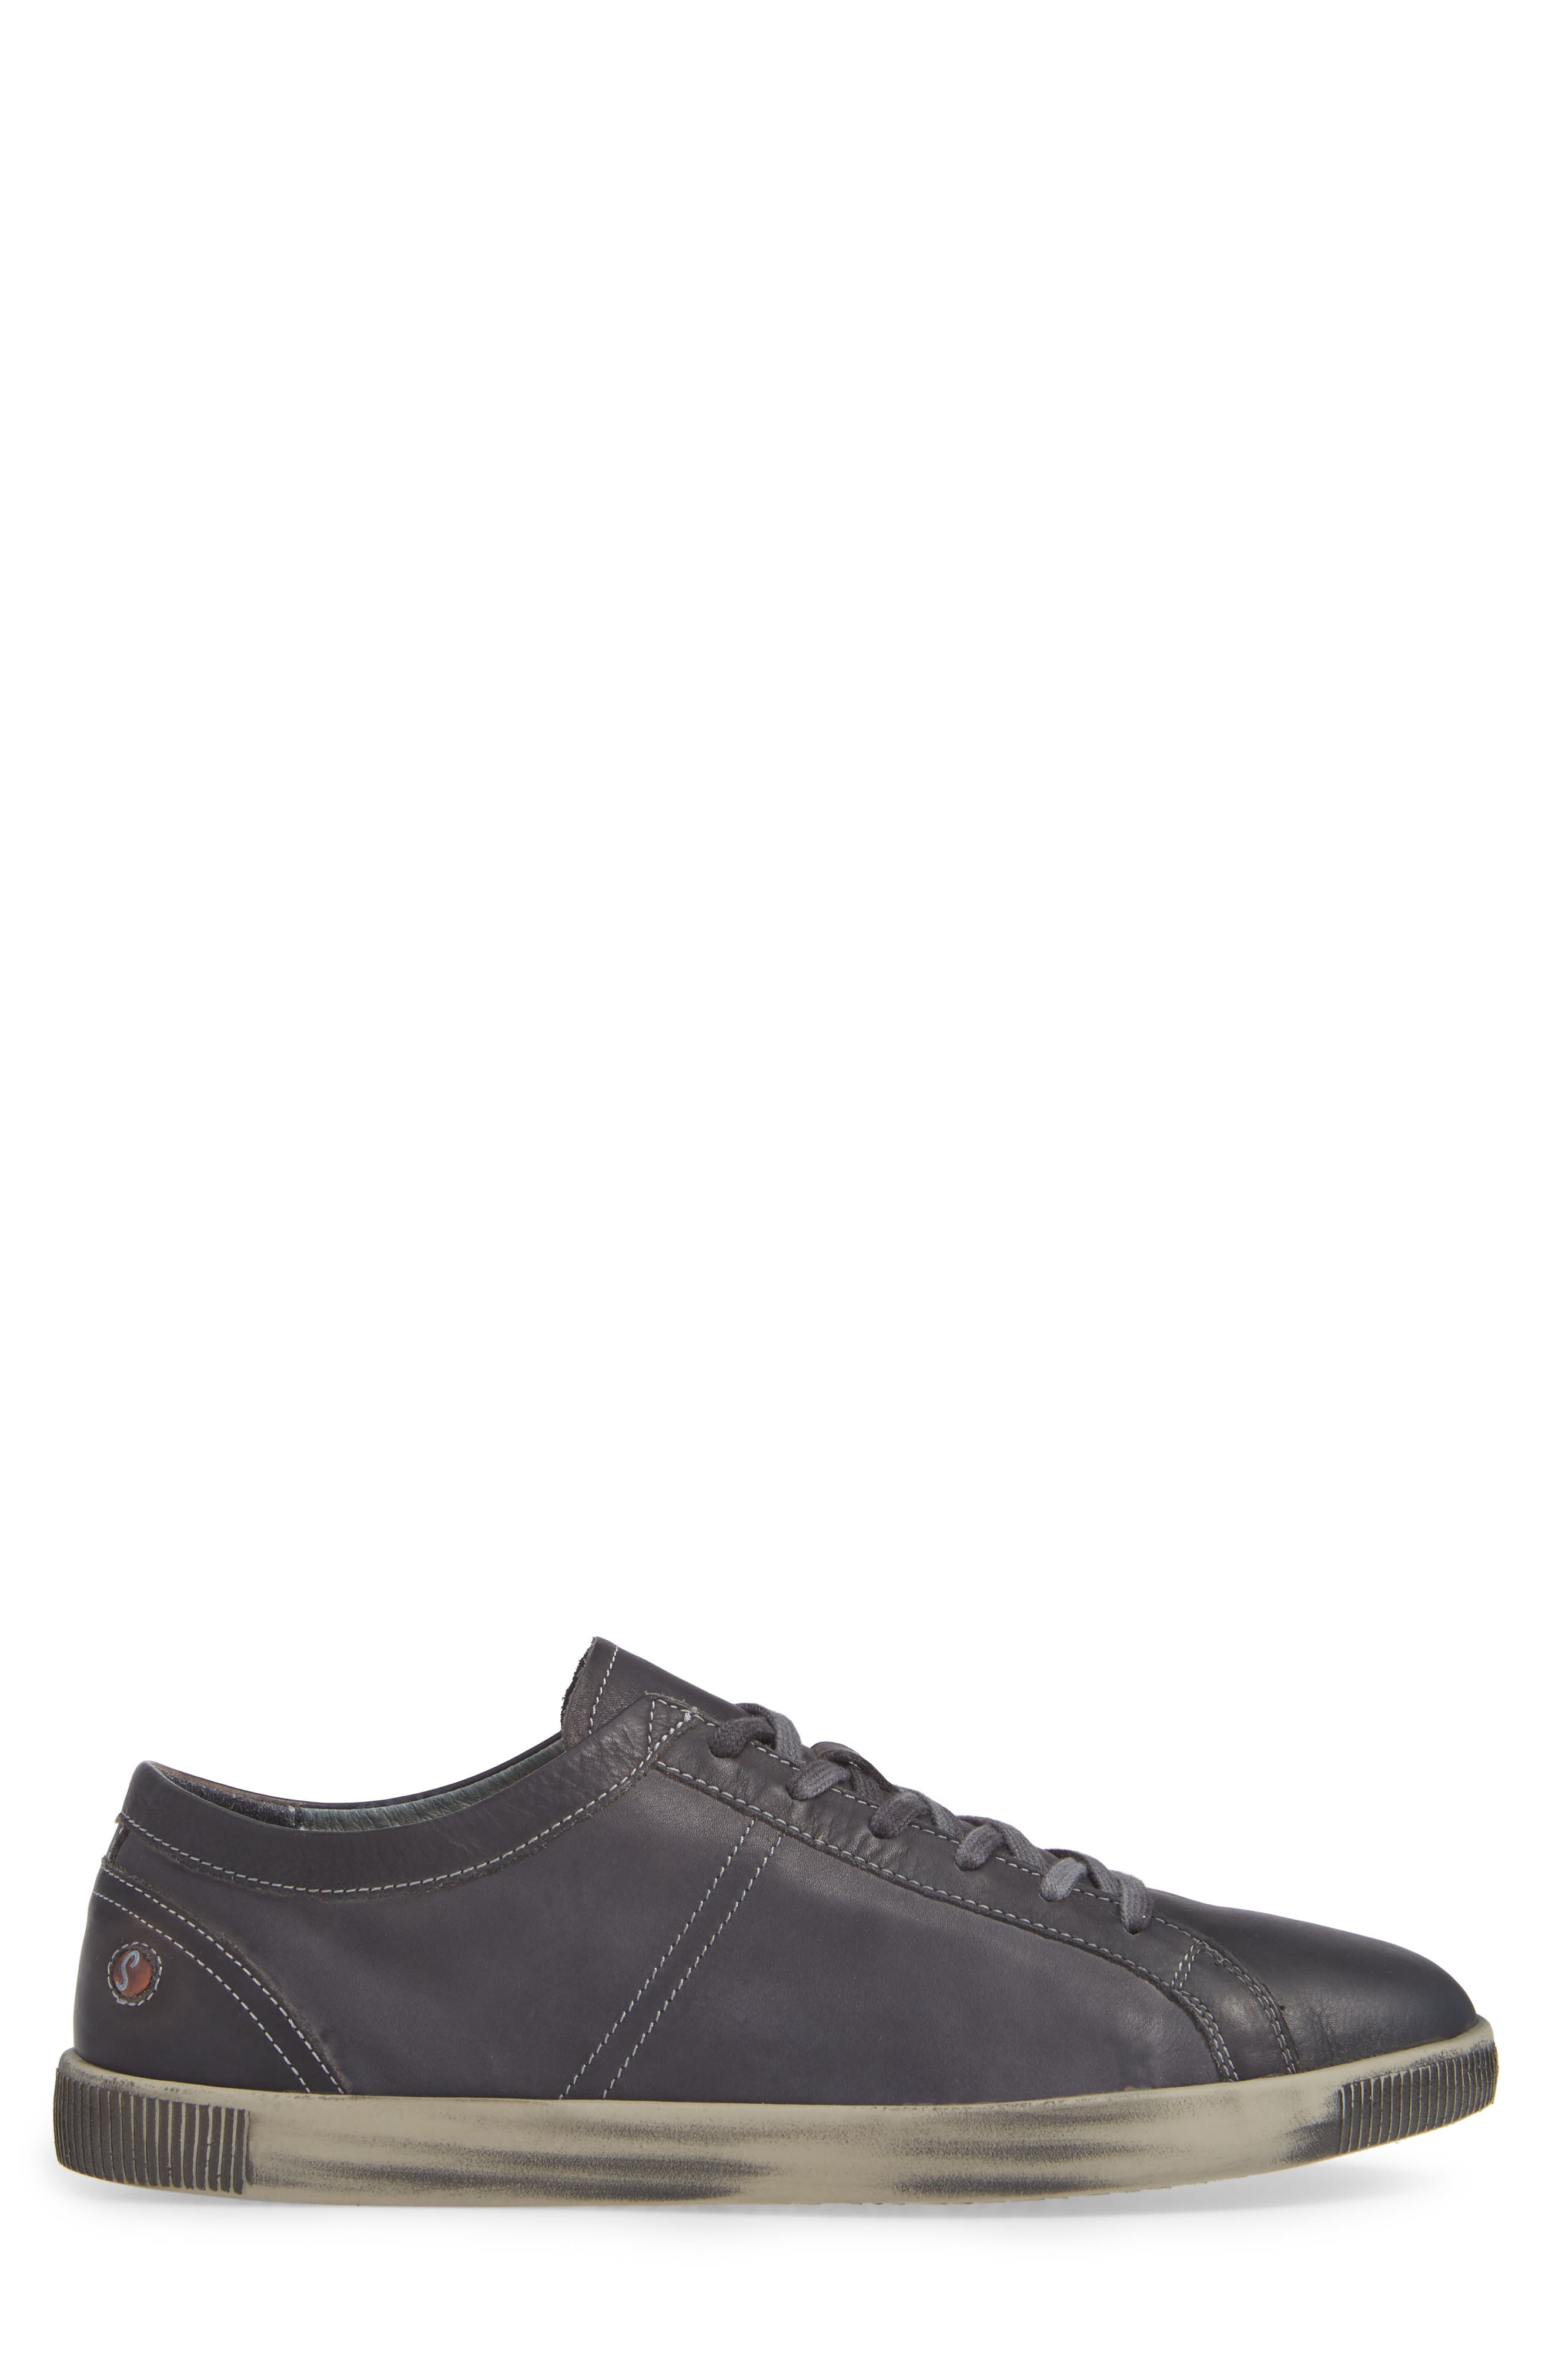 Tom Sneaker,                             Alternate thumbnail 3, color,                             ANTHRACITE WASHED LEATHER